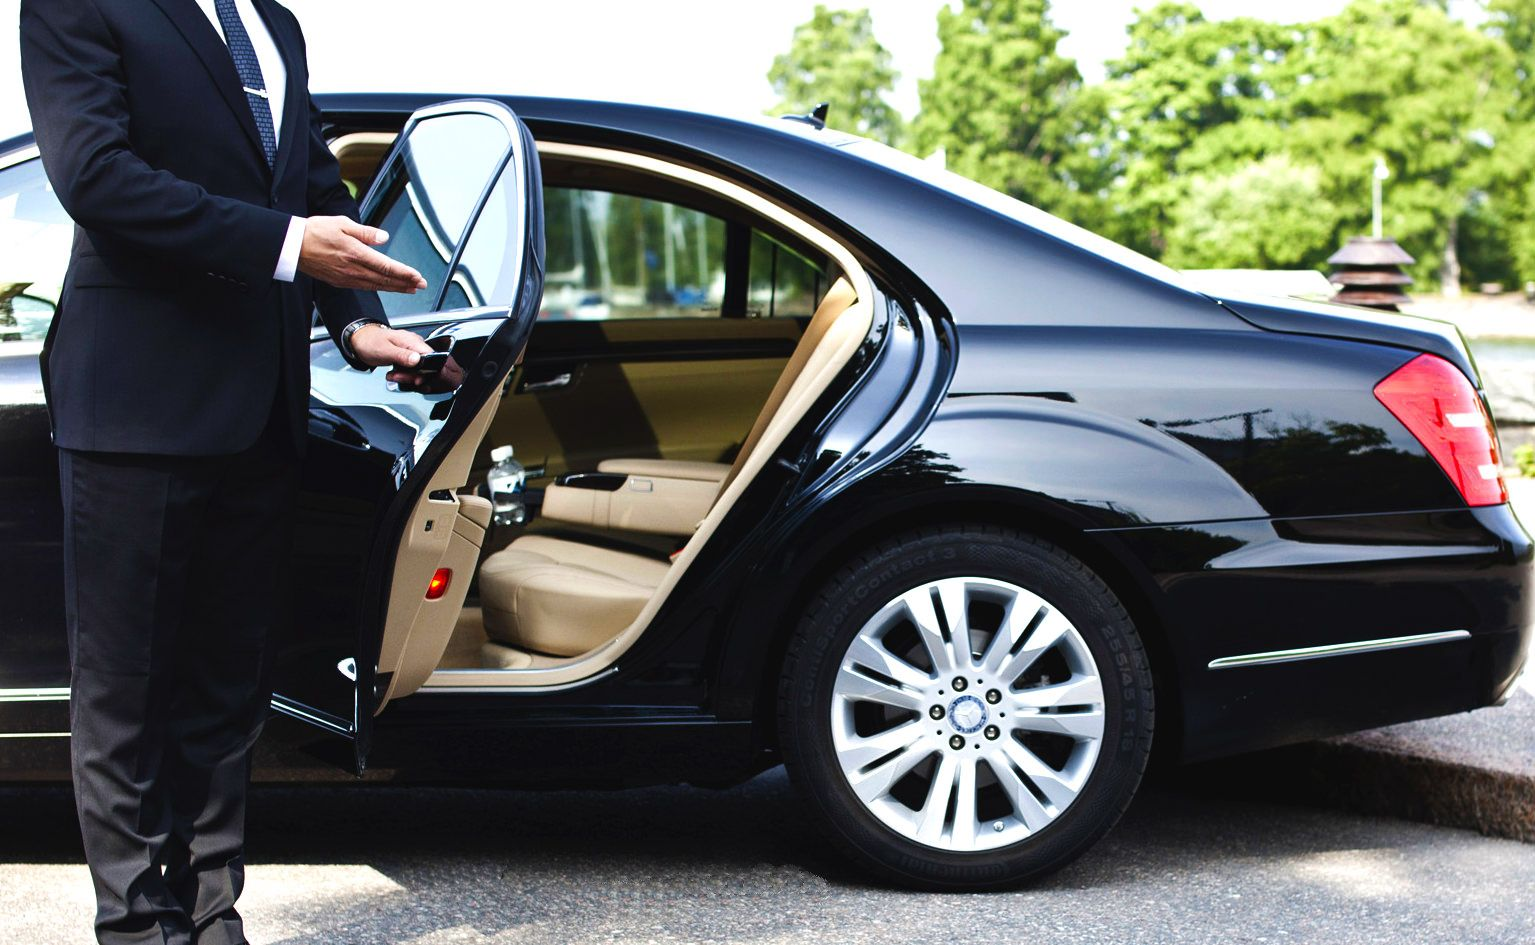 Ab North Taxi Dorado We Will Provide All Types Of Transportation Services And Rain Forest Tour And Limousi Party Bus Rental Limousine Transportation Services